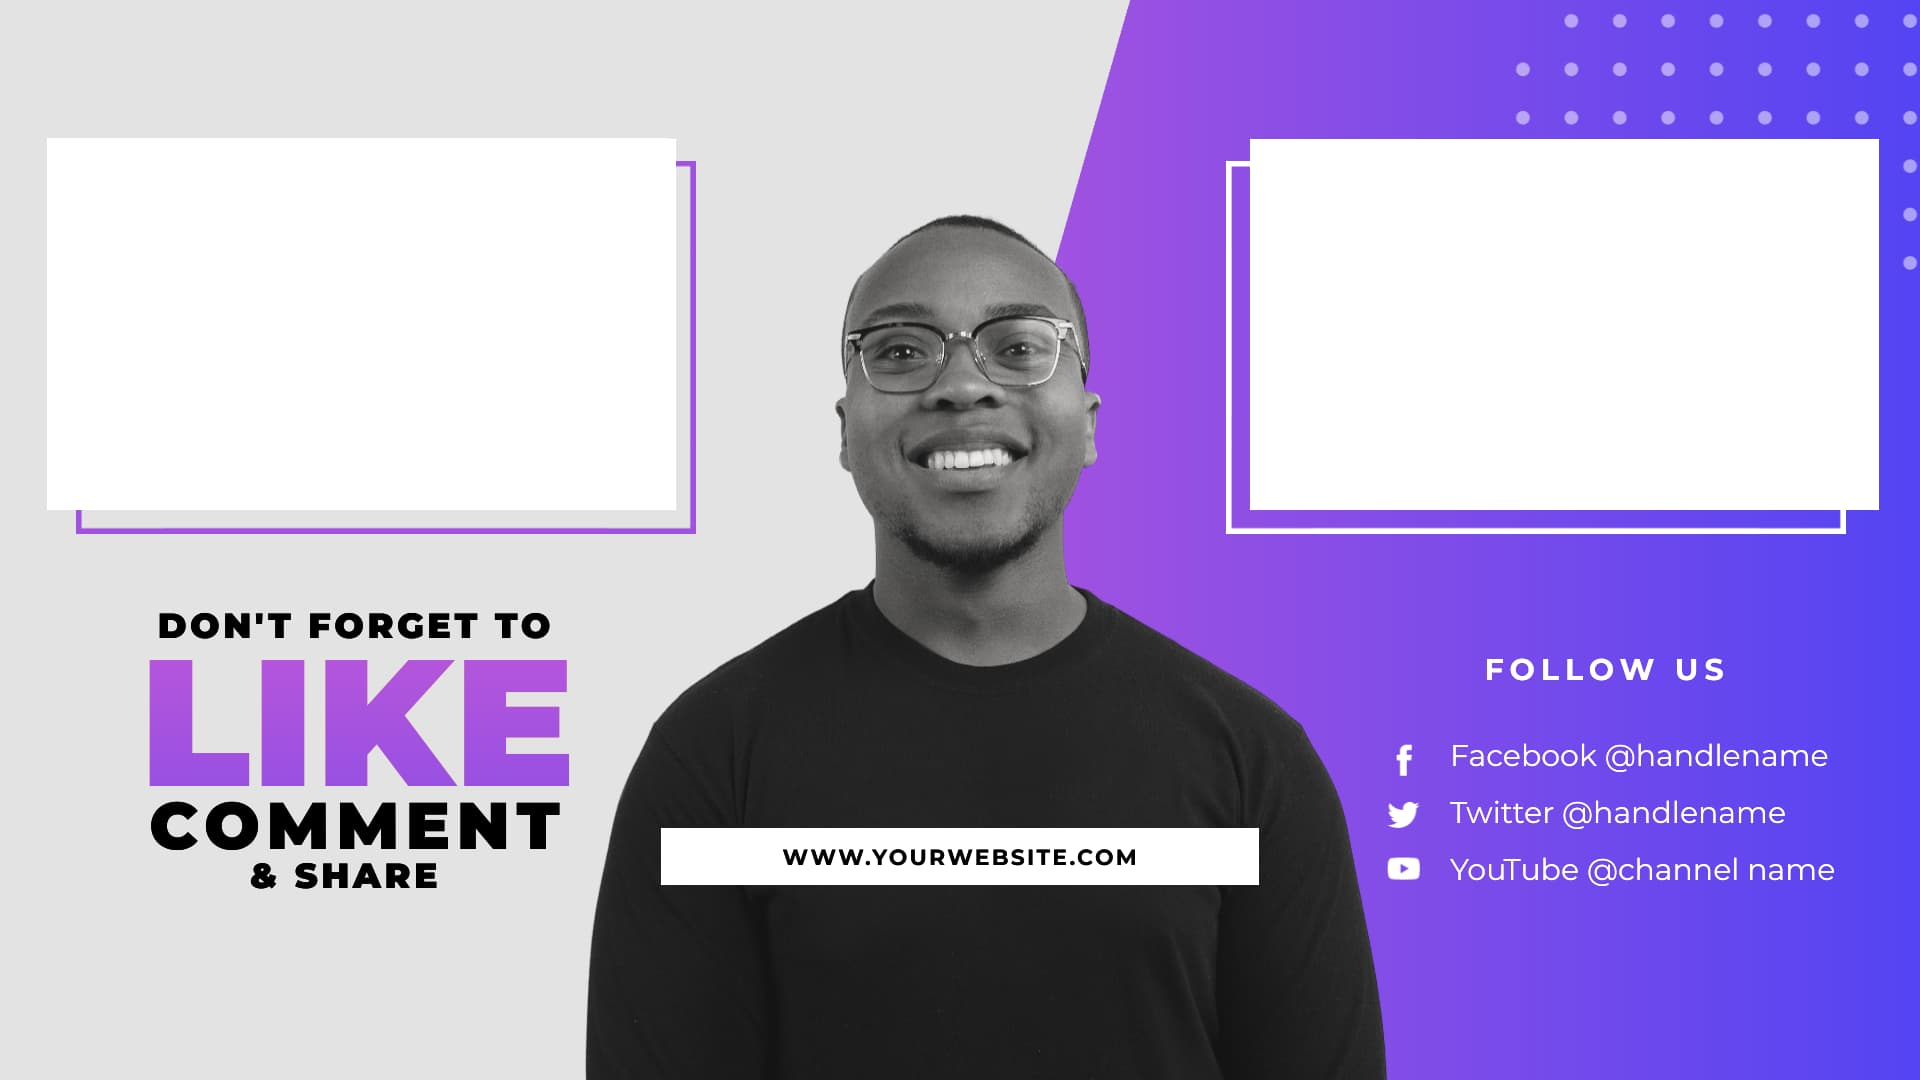 YouTube end screen template with speaker image centered, with video placeholders on either side